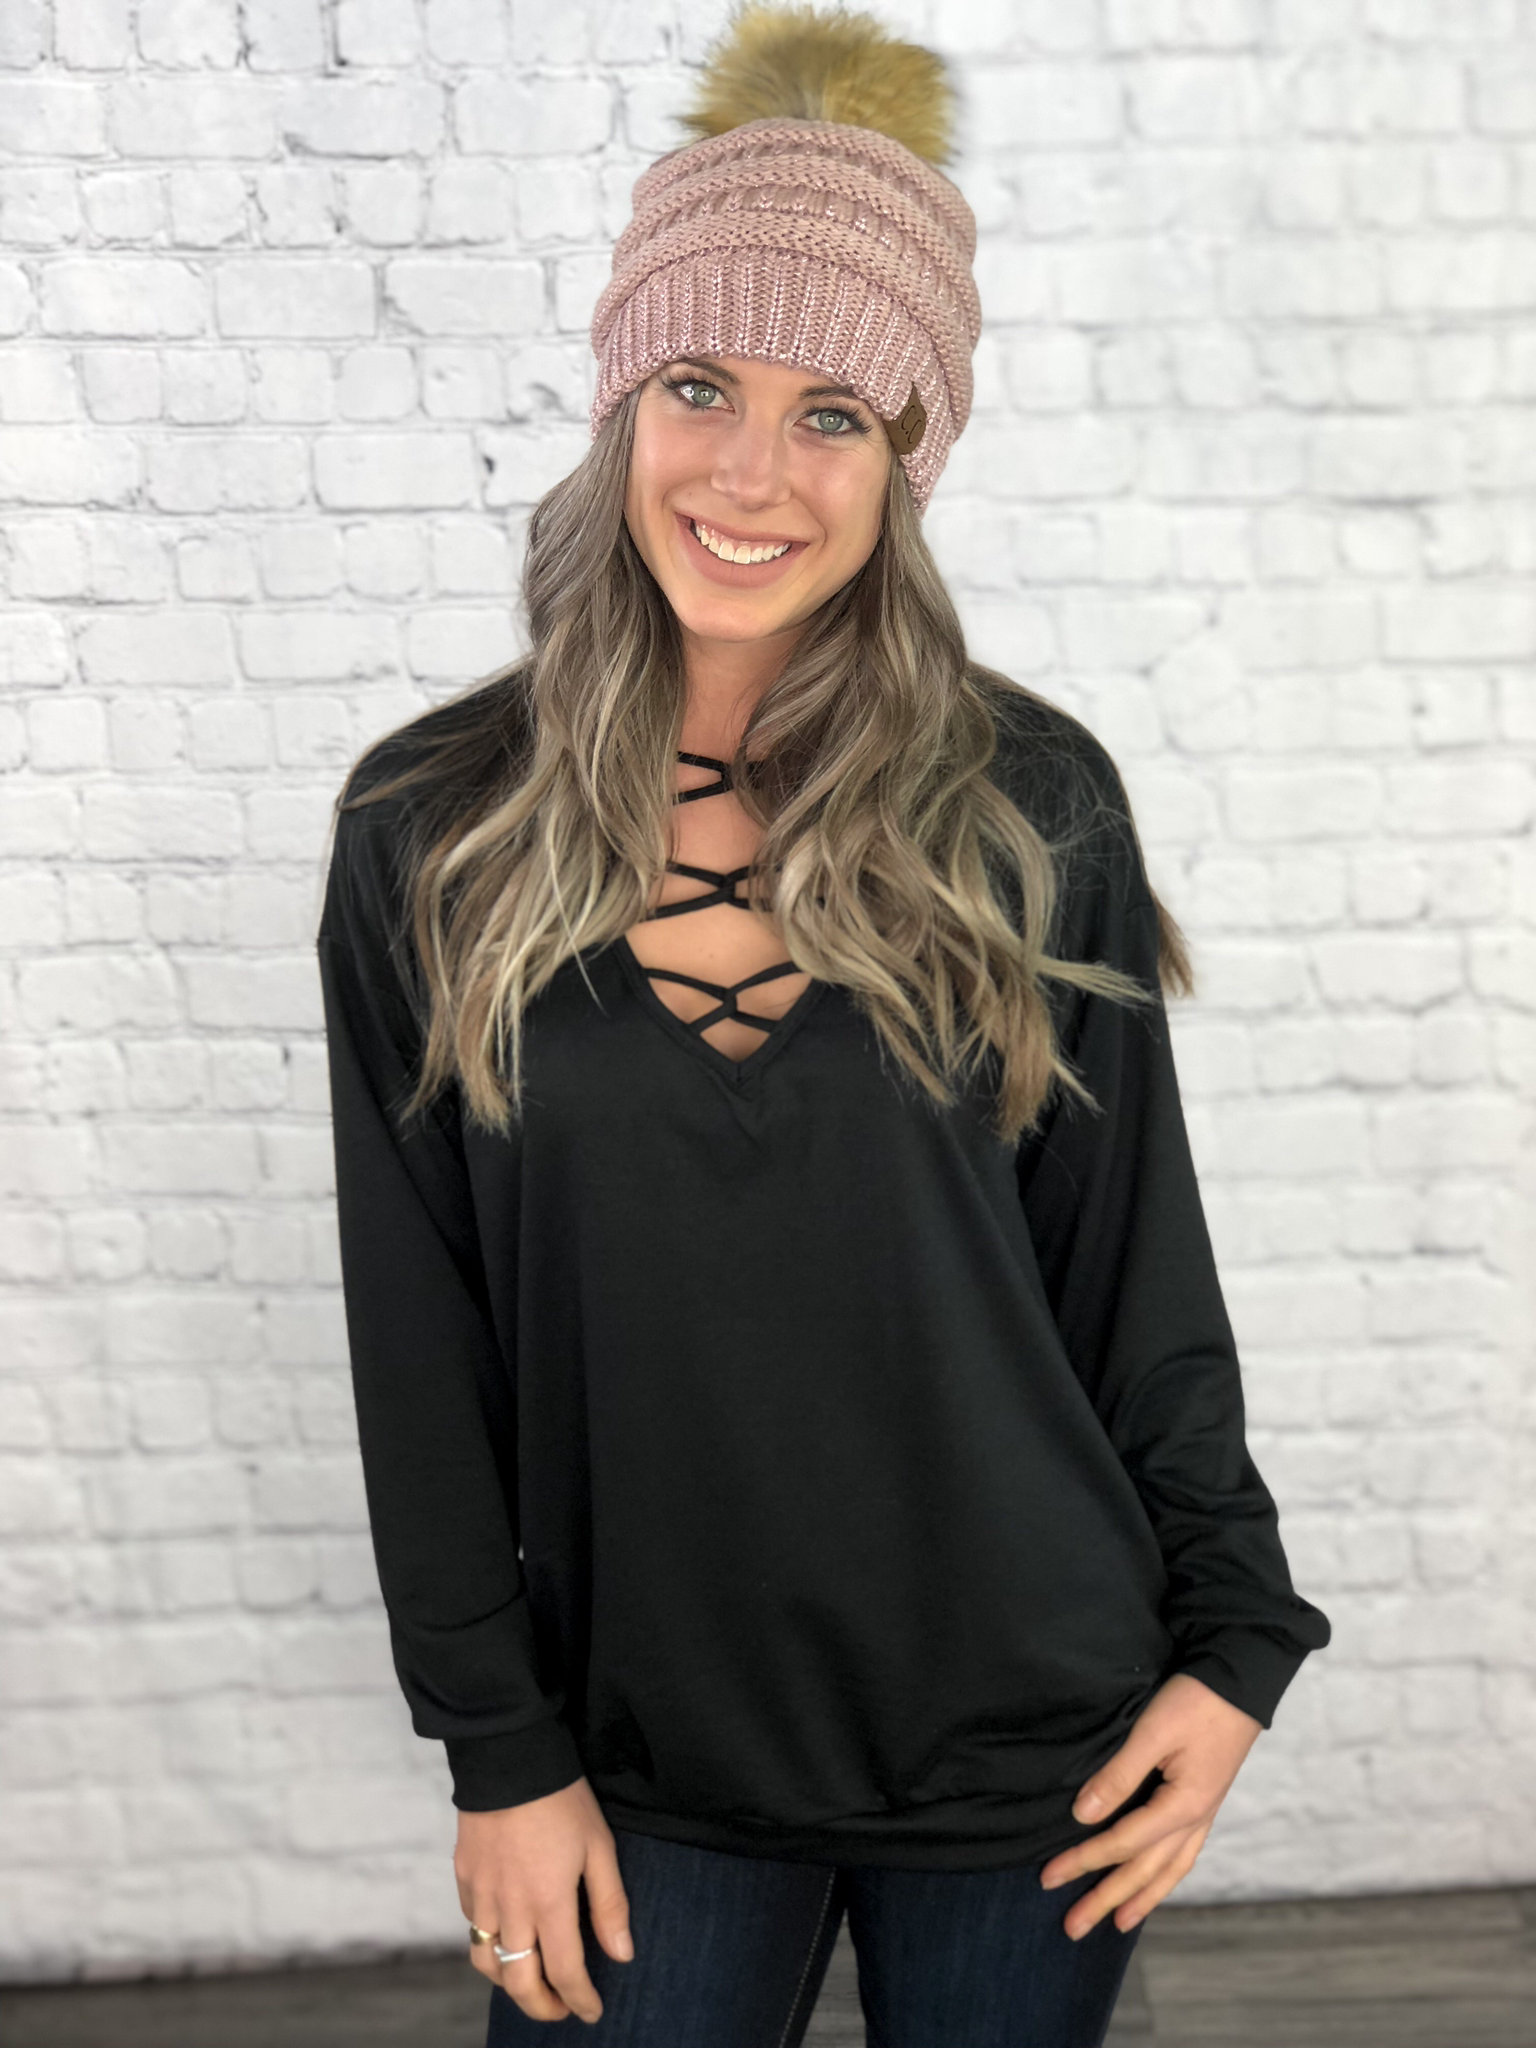 The Sabrina Strappy Sweatshirt  - Black 8362